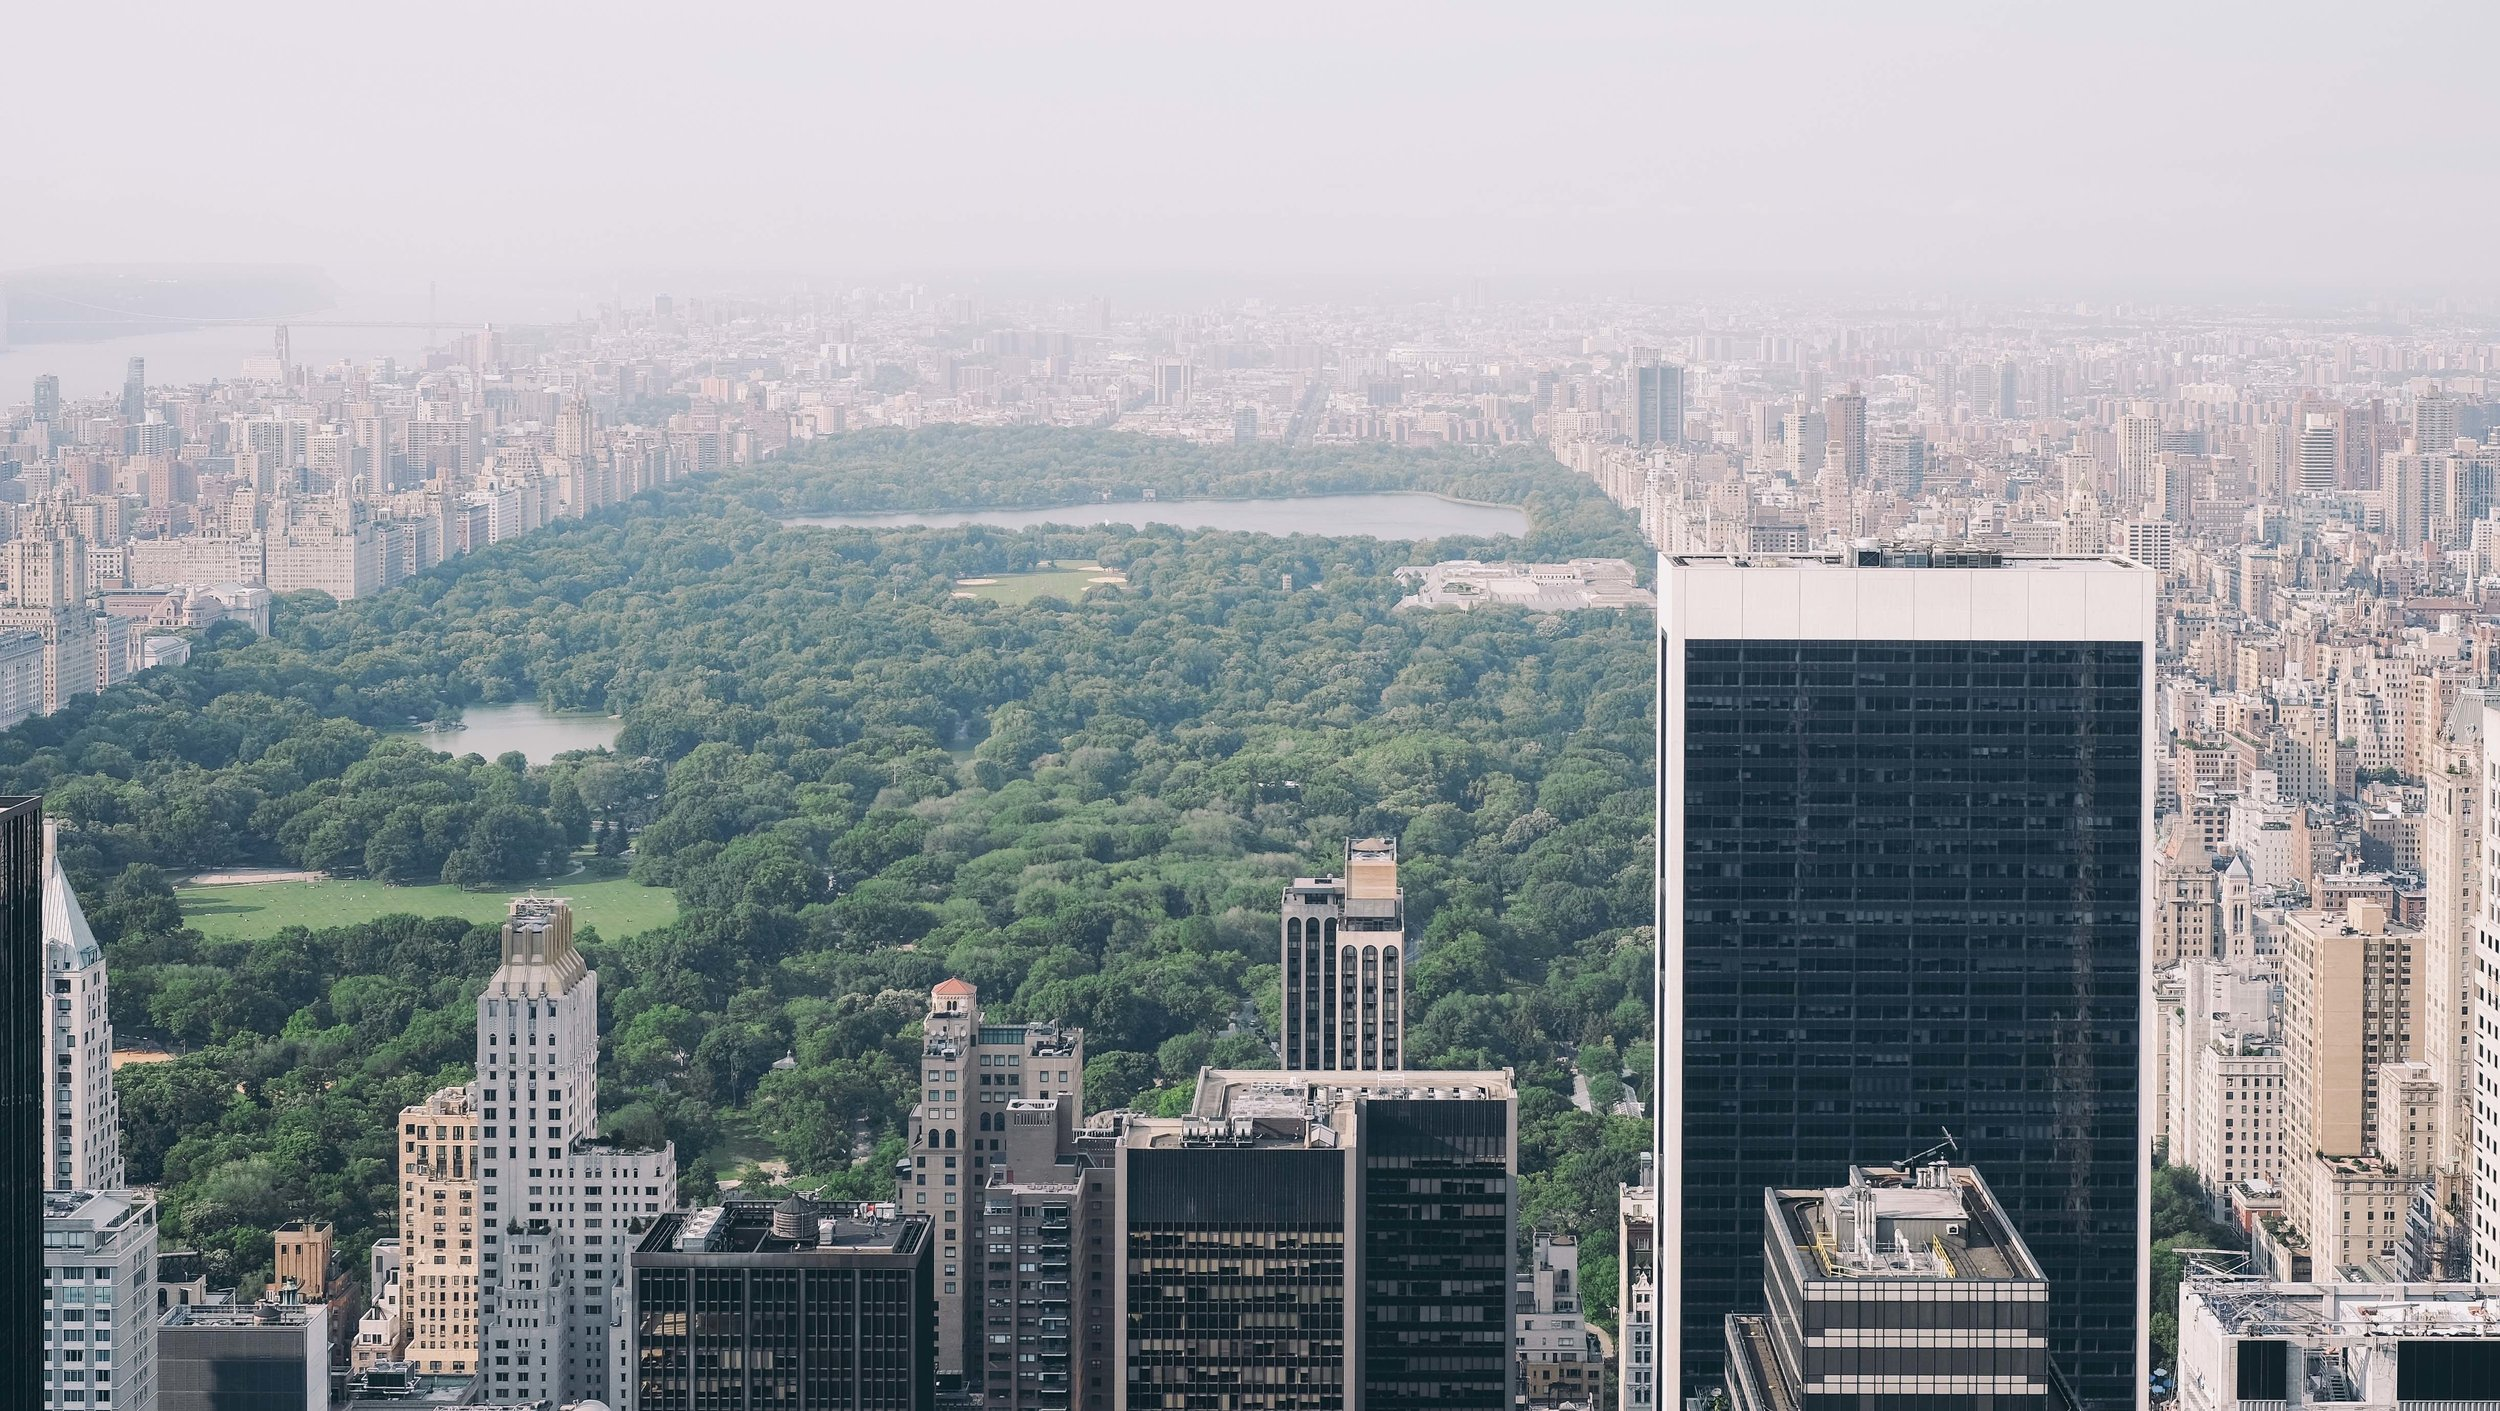 Central Park from Top of Rock